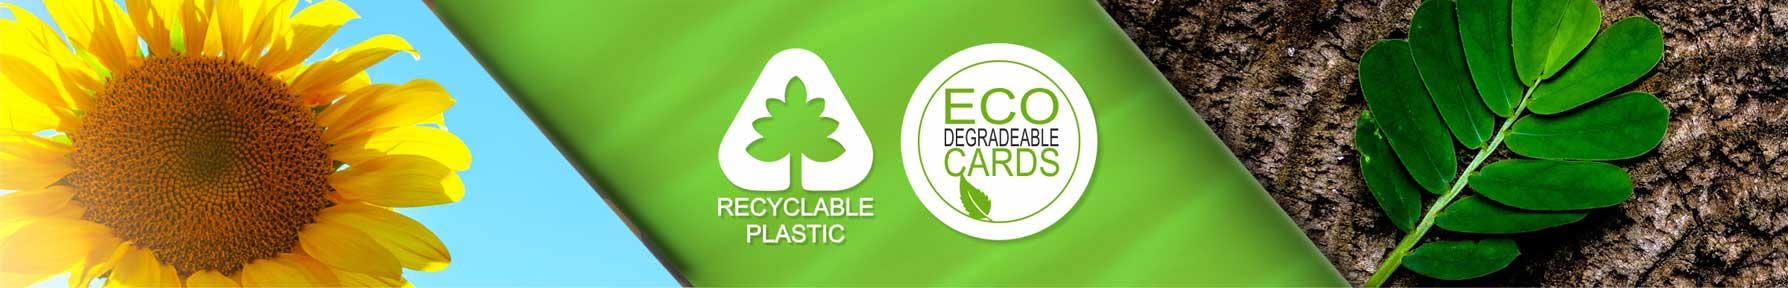 Premier eco cards plastic card examples